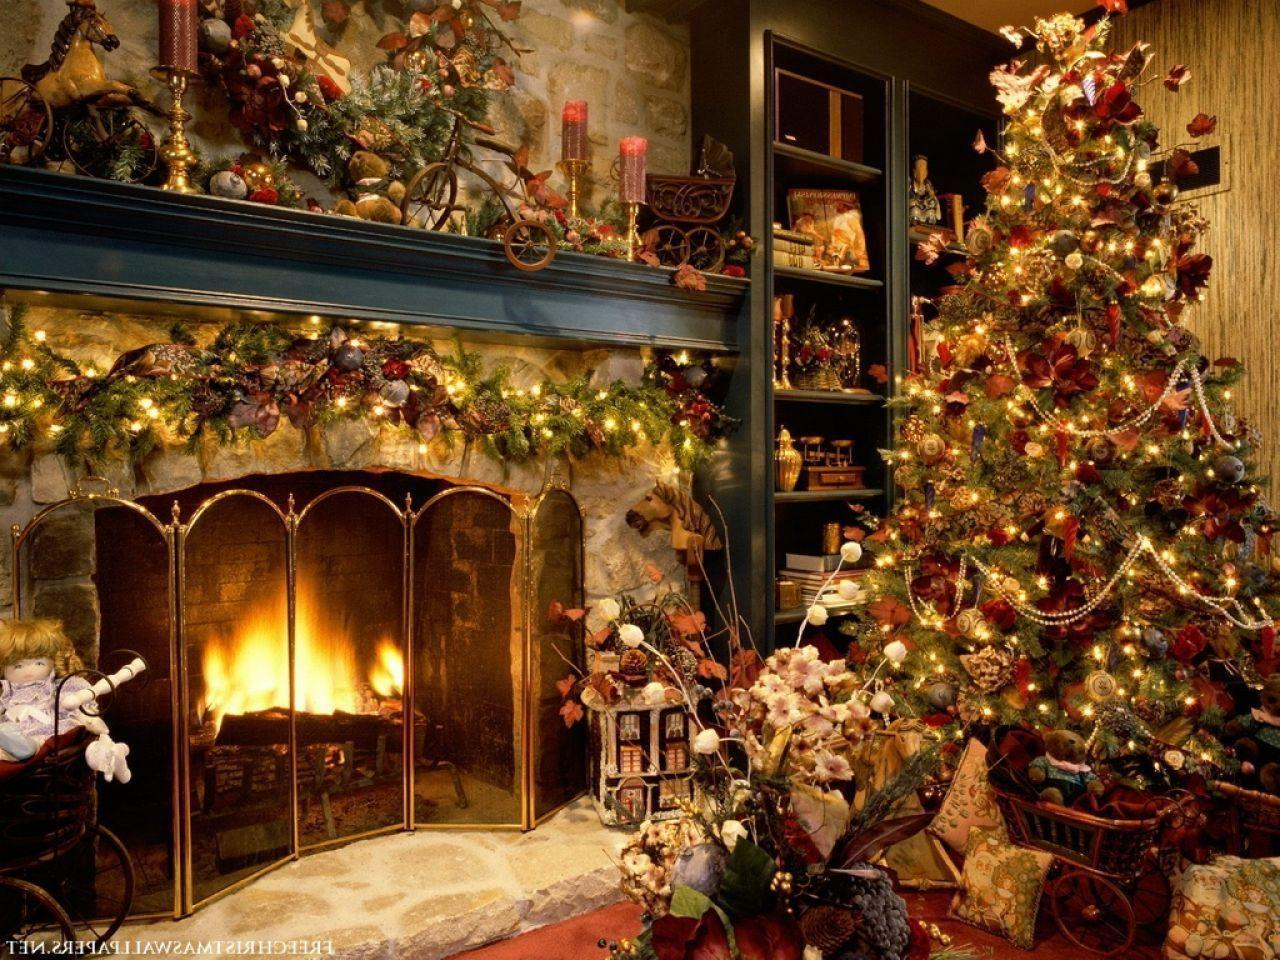 Christmas Tree And Fireplace Wallpapers